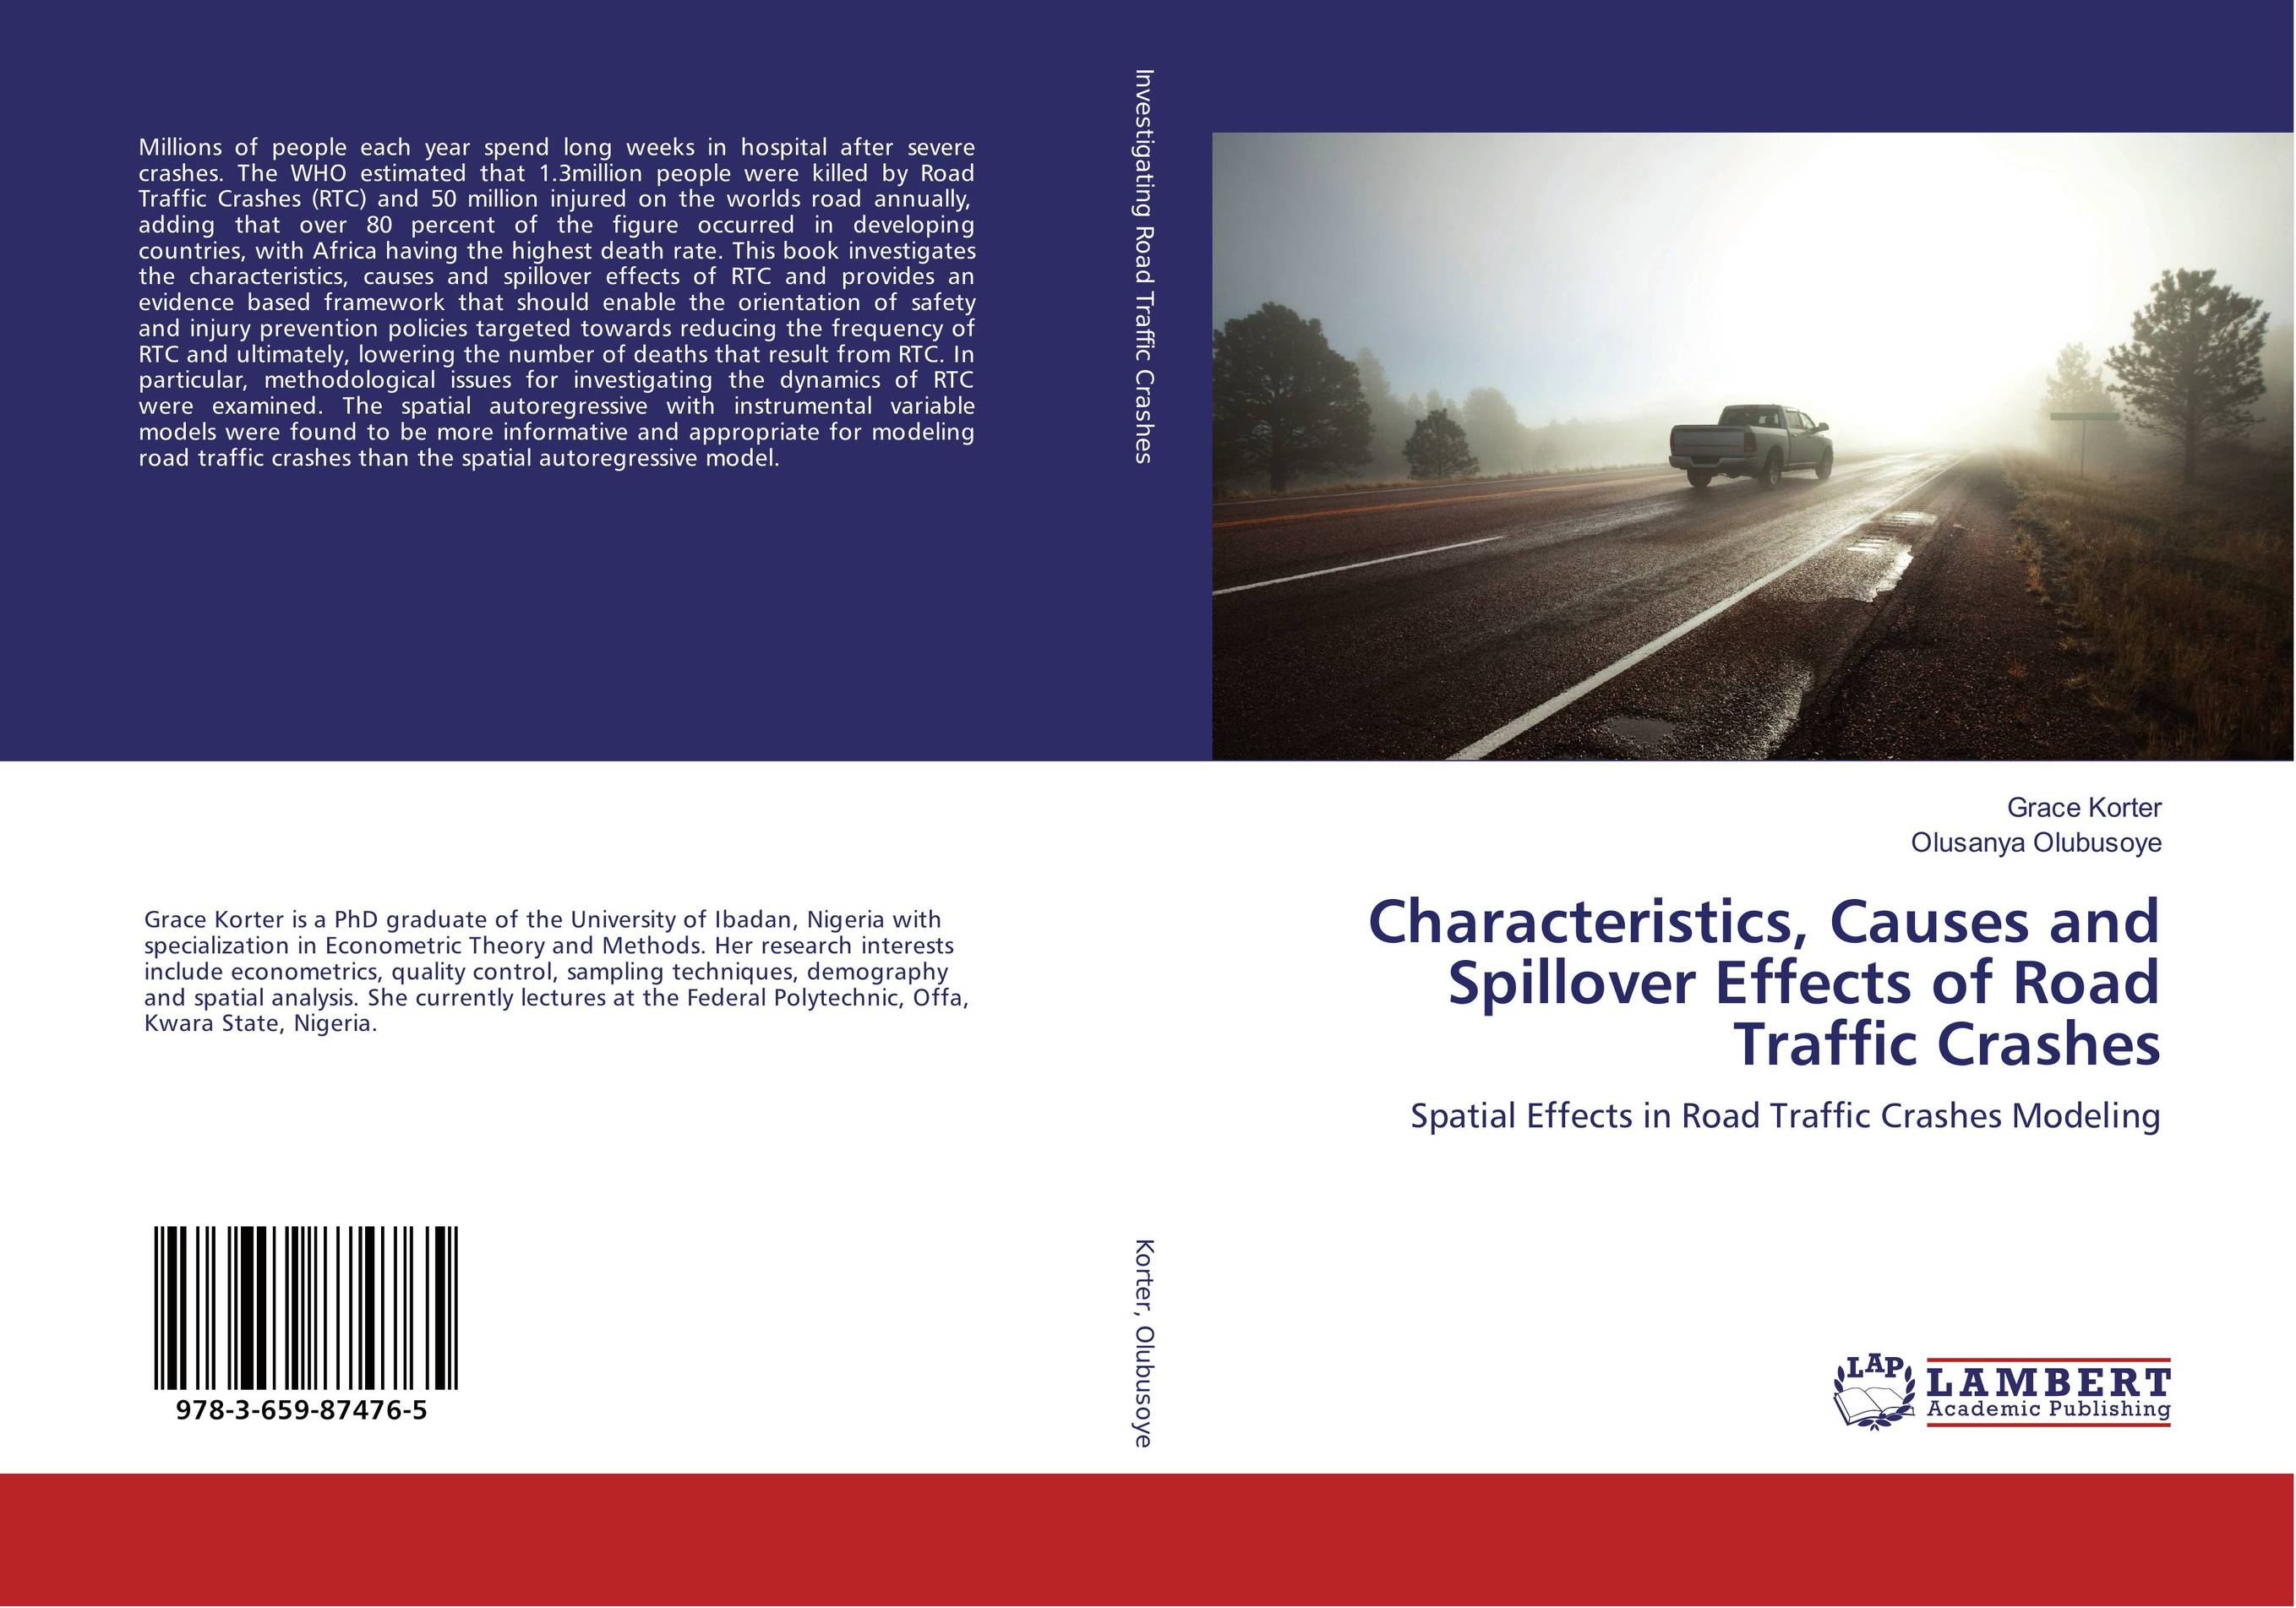 Characteristics, Causes and Spillover Effects of Road Traffic Crashes